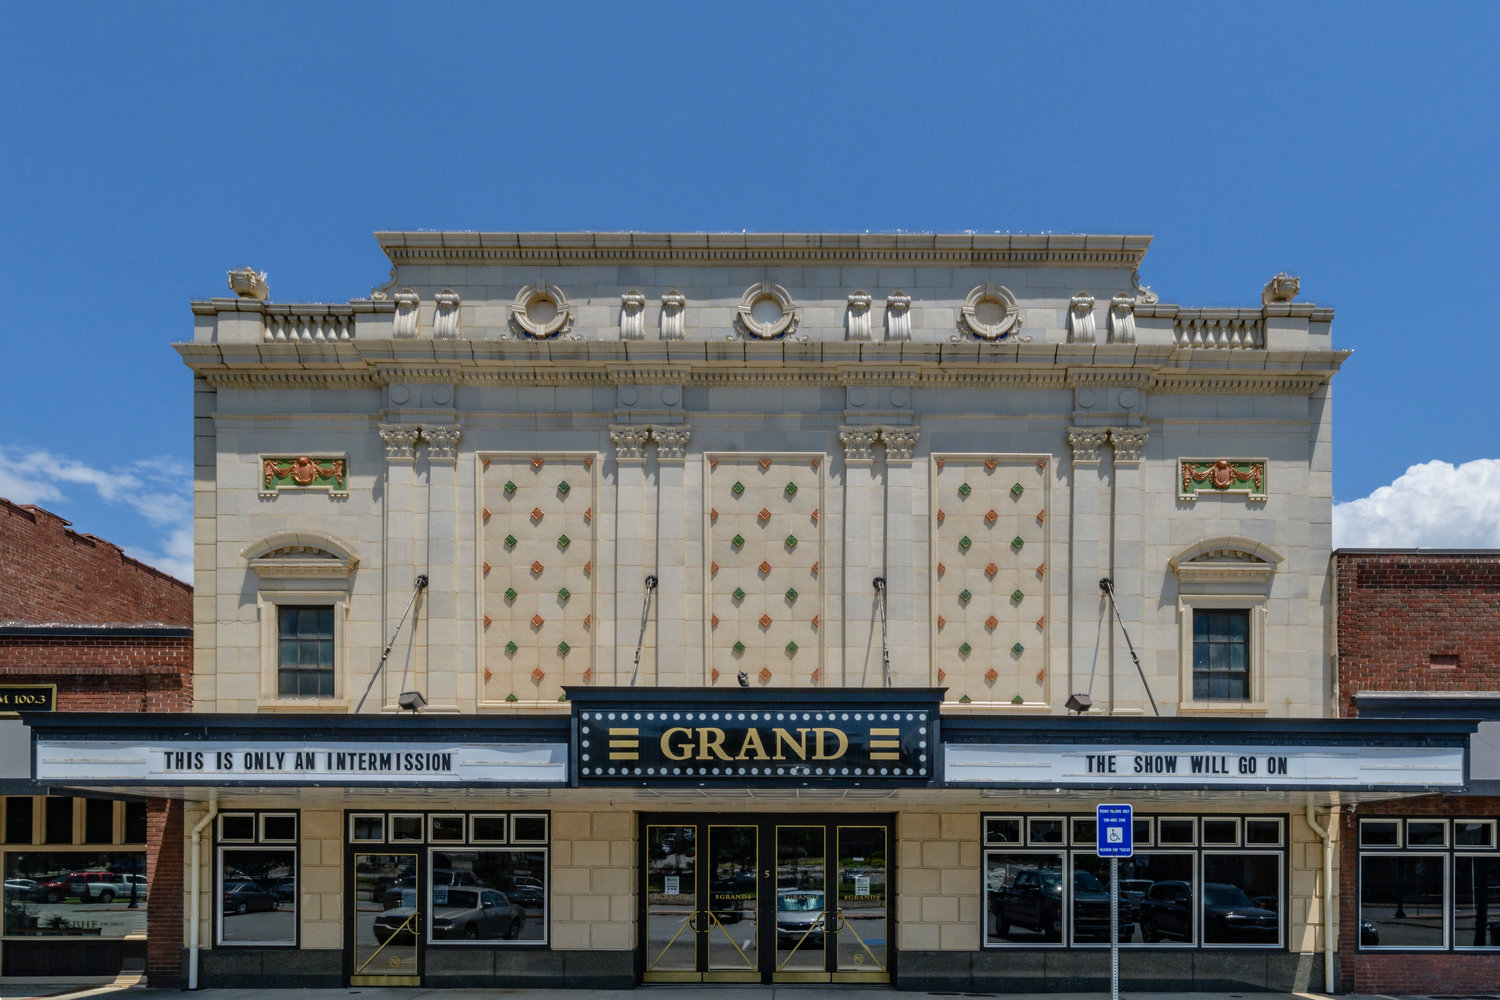 The Grand Theatre is one of two Cartersville venues highlighted in photographer Michael Boatright's Dark Houses Atlanta project.